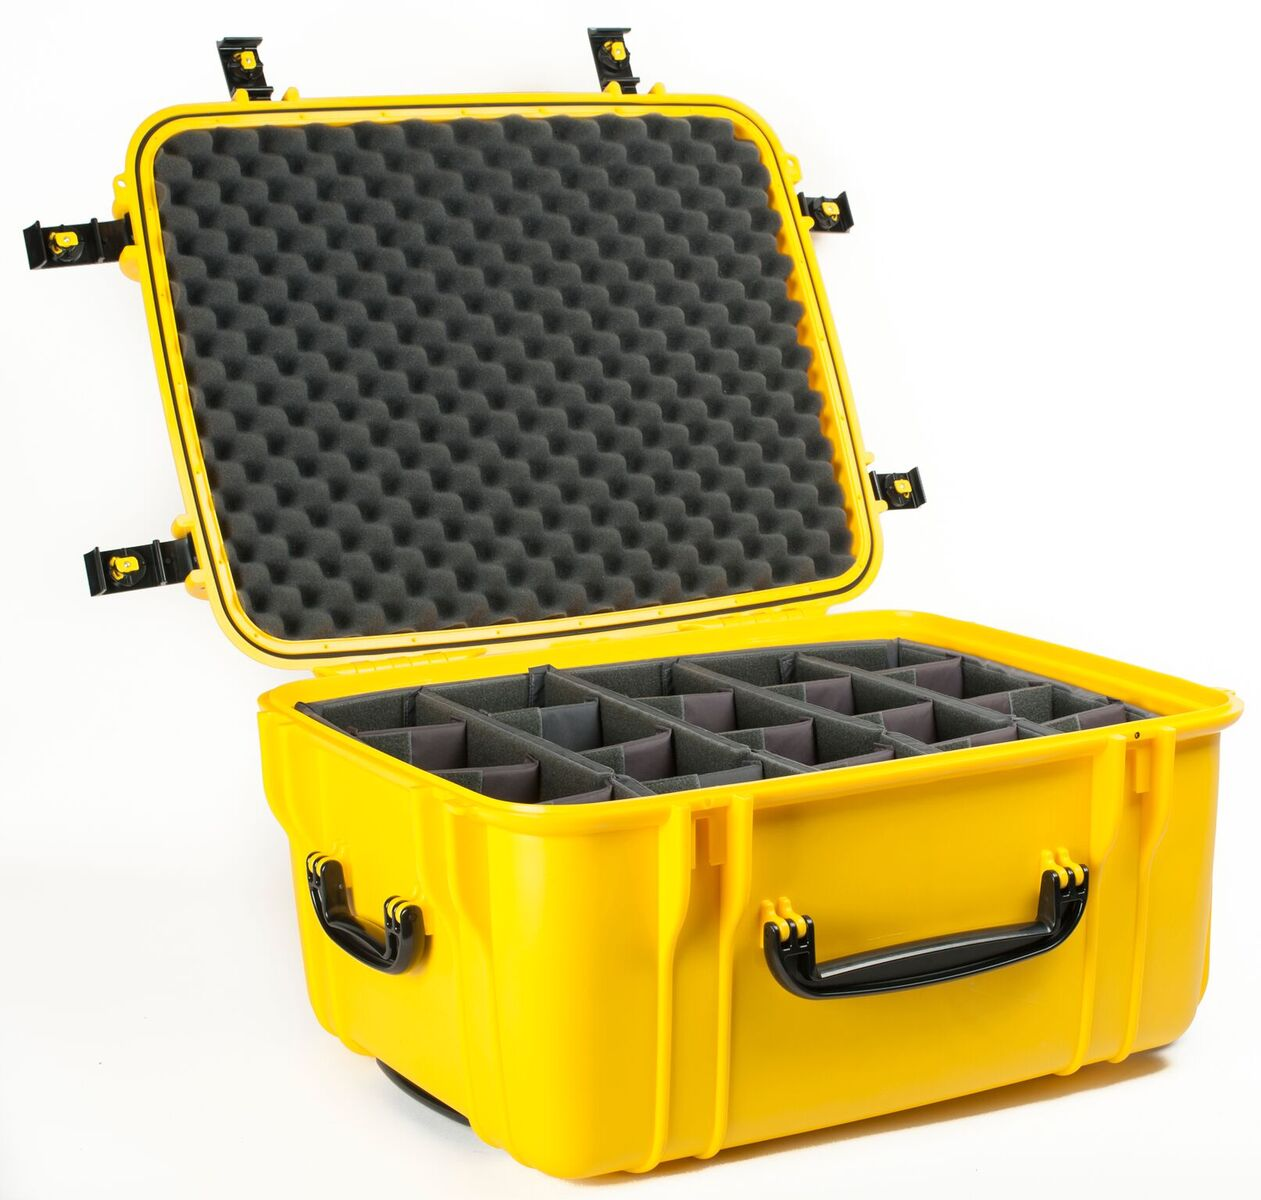 SEAHORSE PROTECTIVE EQUIPMENT CASES      SE1220D,YL